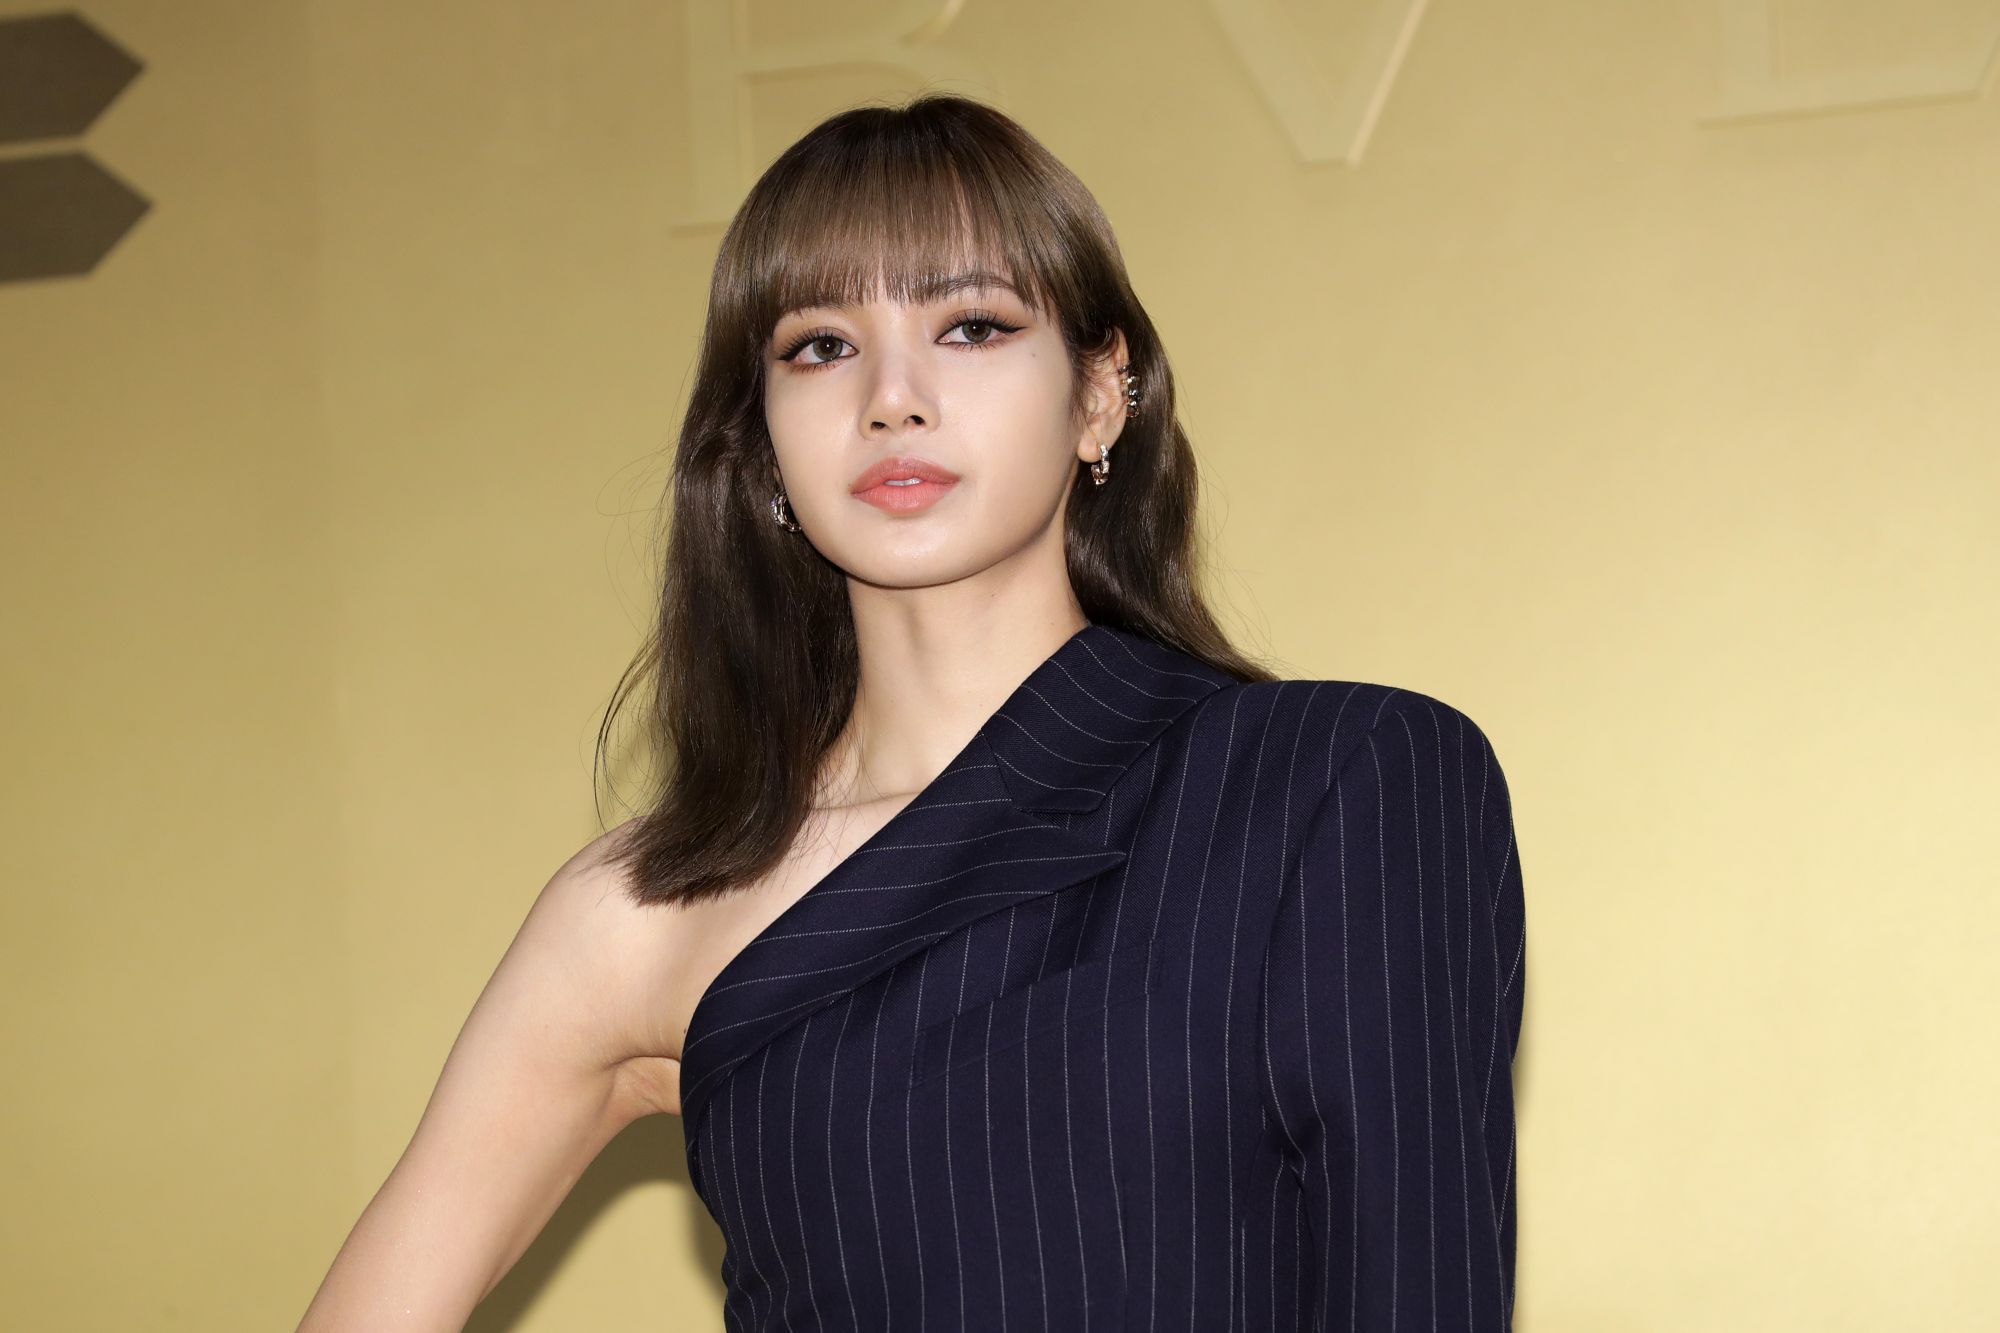 SEOUL, SOUTH KOREA - OCTOBER 29: Lisa aka Lalisa Manoban of South Korean girl group BLACKPINK attends the photocall for the BVLGARI 'Serpenti Seduttori' launch event on October 29, 2019 in Seoul, South Korea. (Photo by Han Myung-Gu/WireImage)